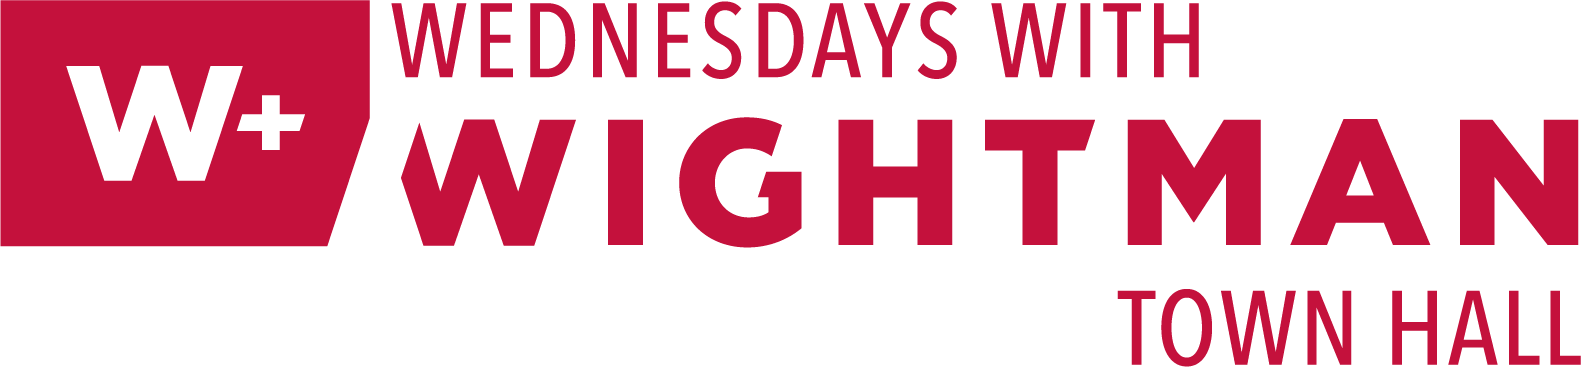 Wednesdays with Wightman Townhall Recap for January 20th